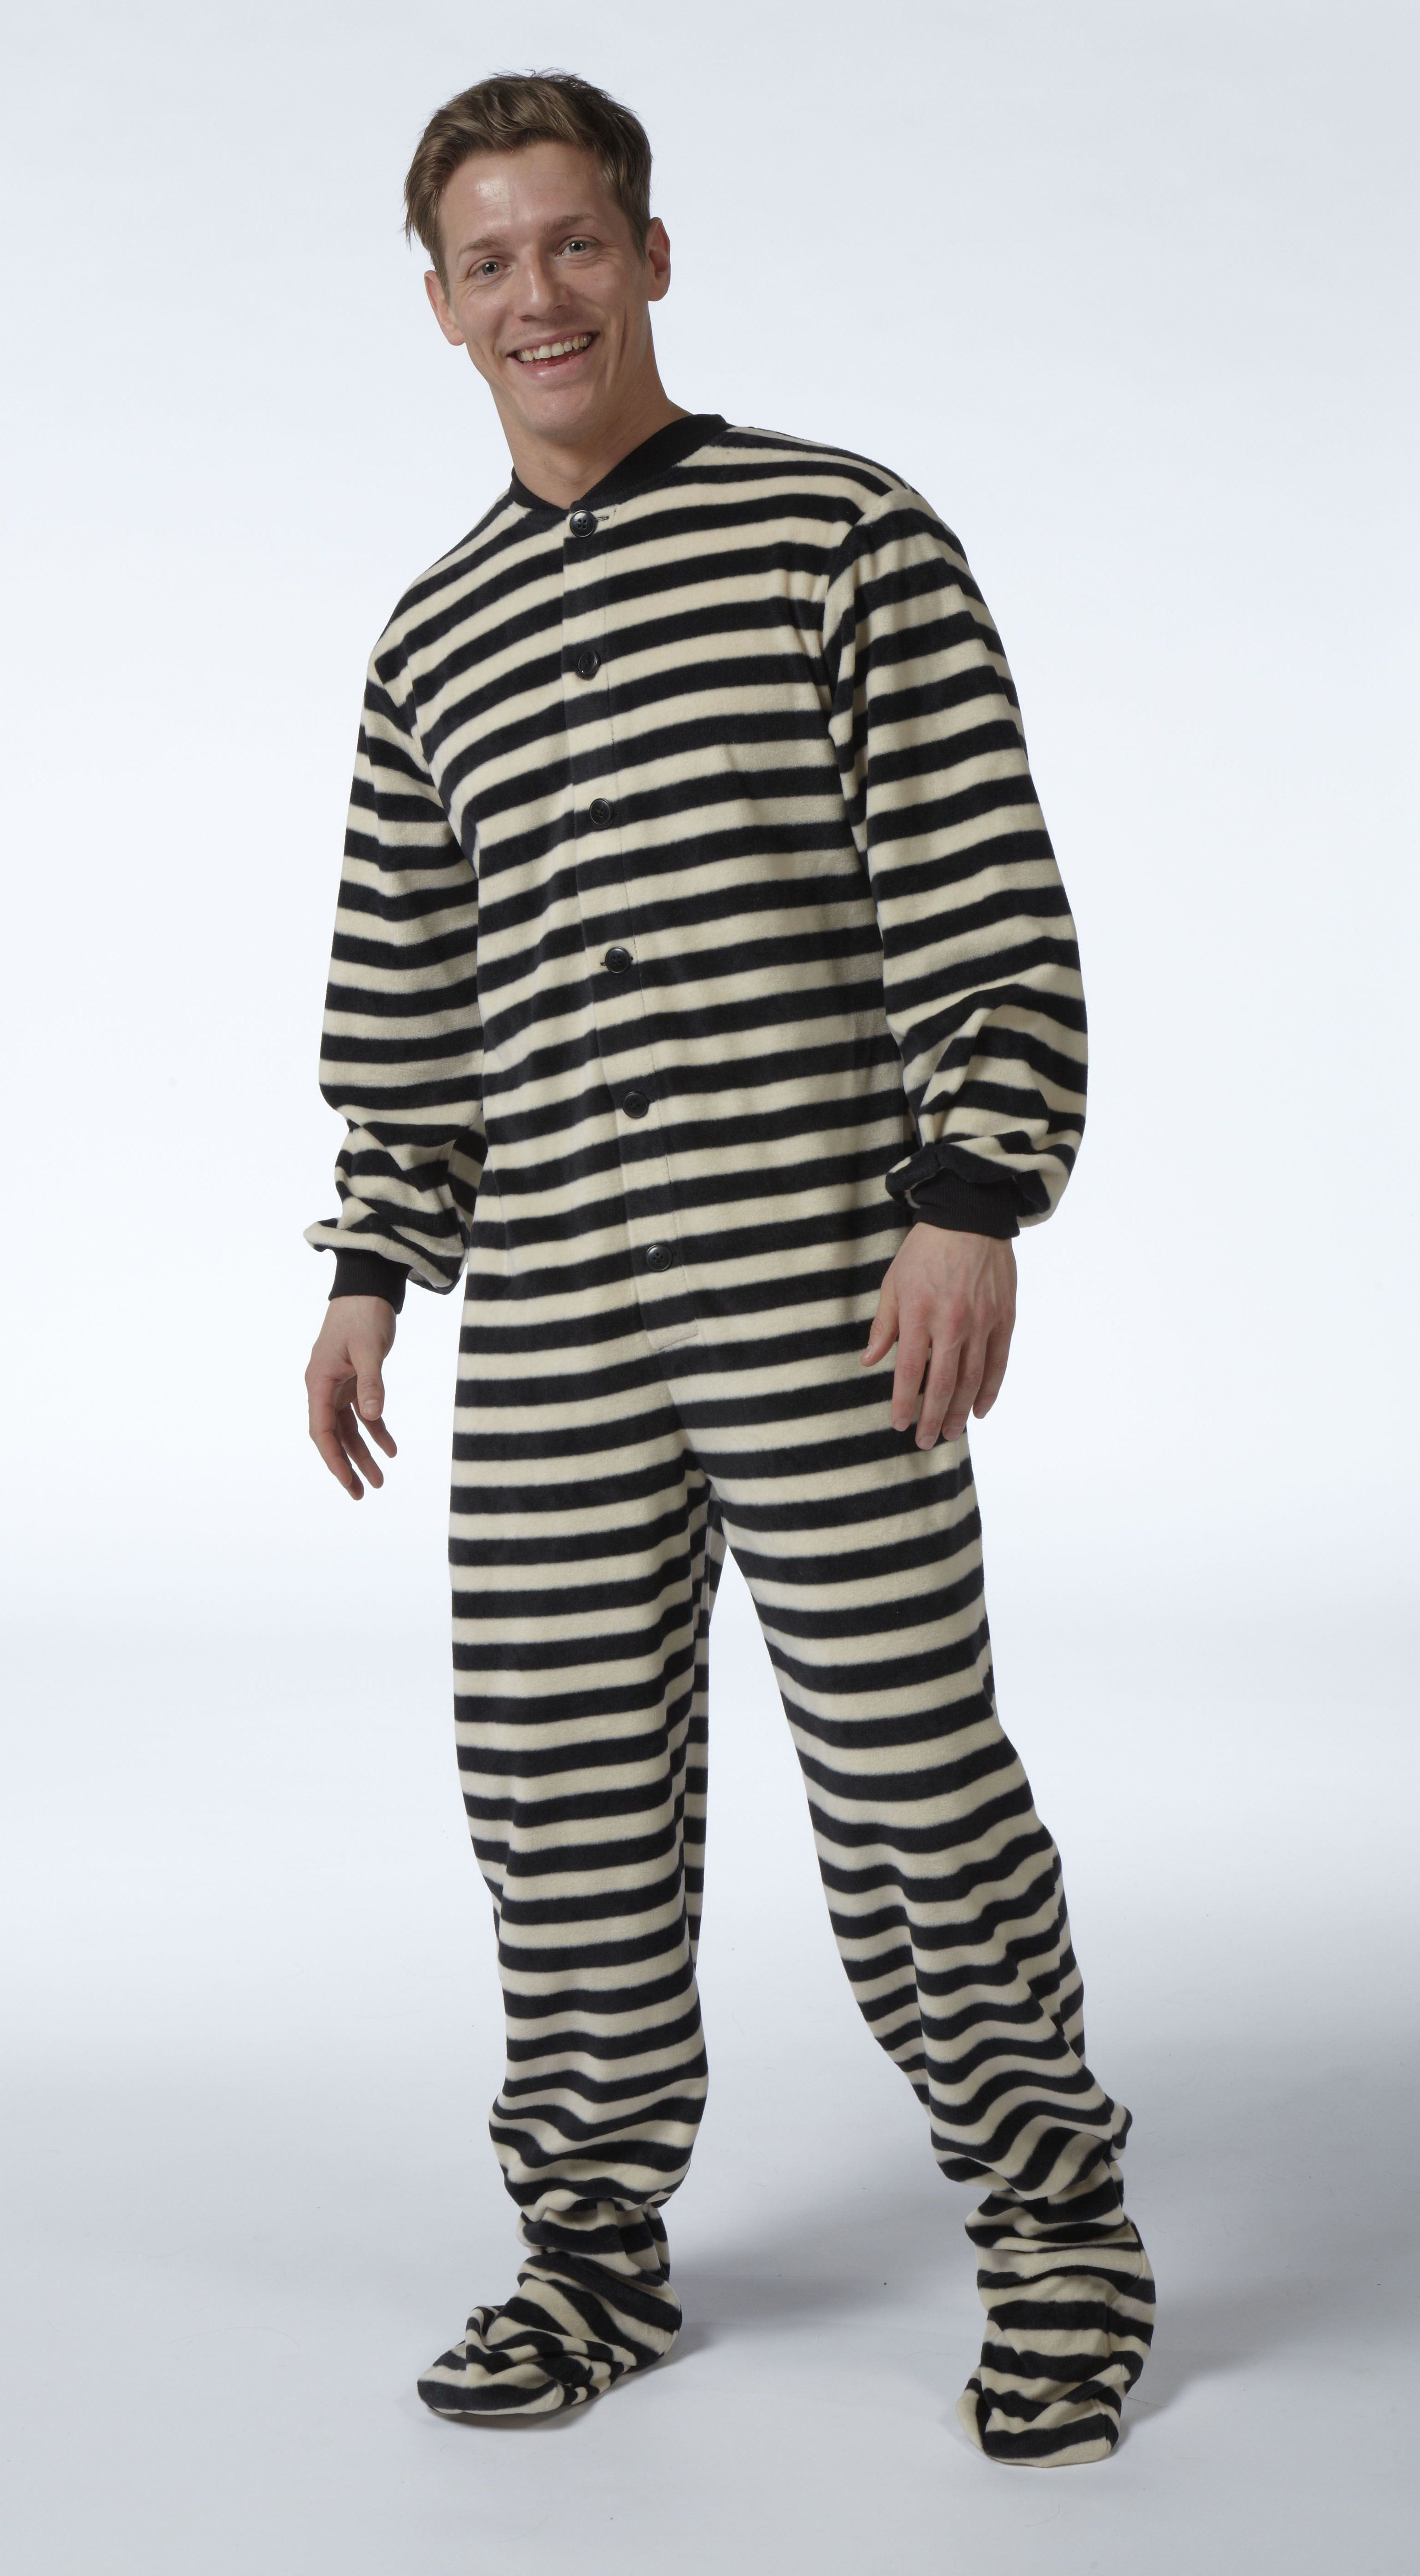 d8ddab31cd6d Snuggaroo Men s Black White Stripe All In One Footed Onesie Pyjamas PJs  Pajamas